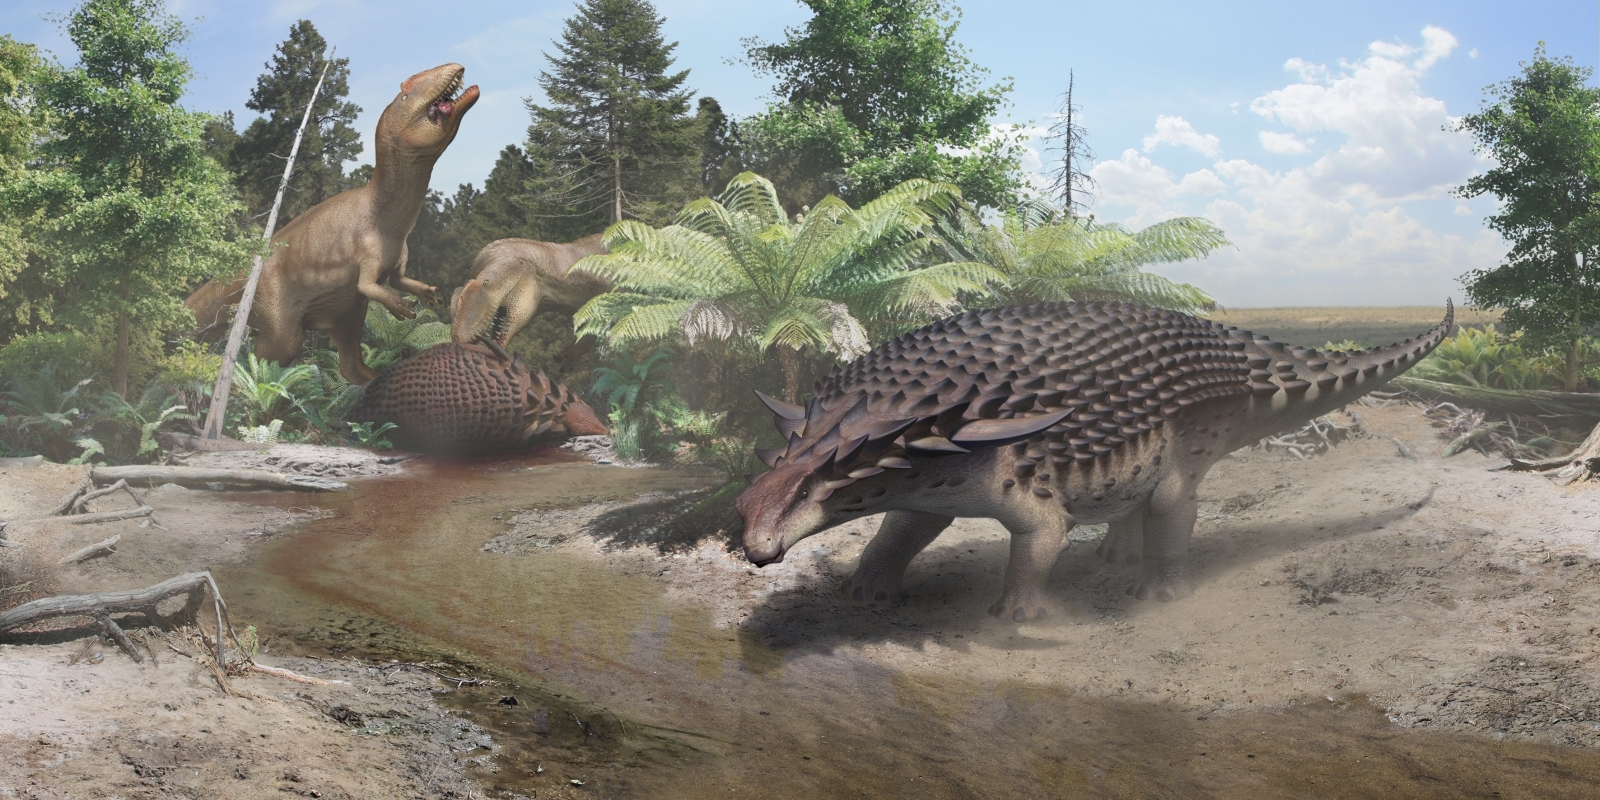 Meet Canada's newest dinosaur, unearthed from the oil sands